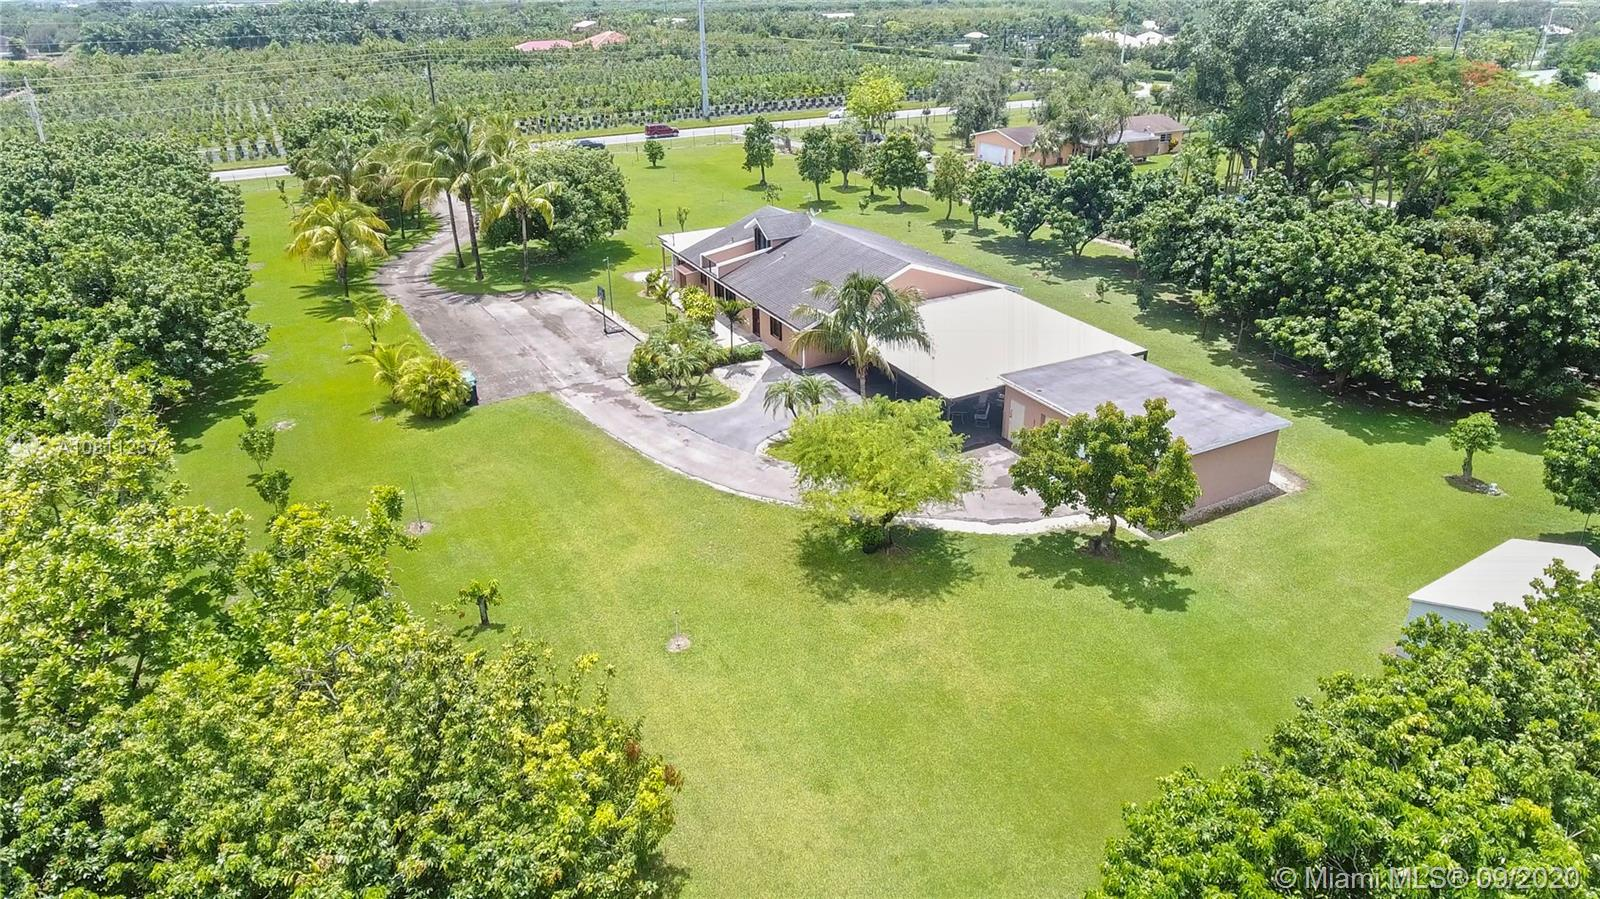 almost 6 acres with home, det. garage/workshop, 9 car carport and income longans on a main road,